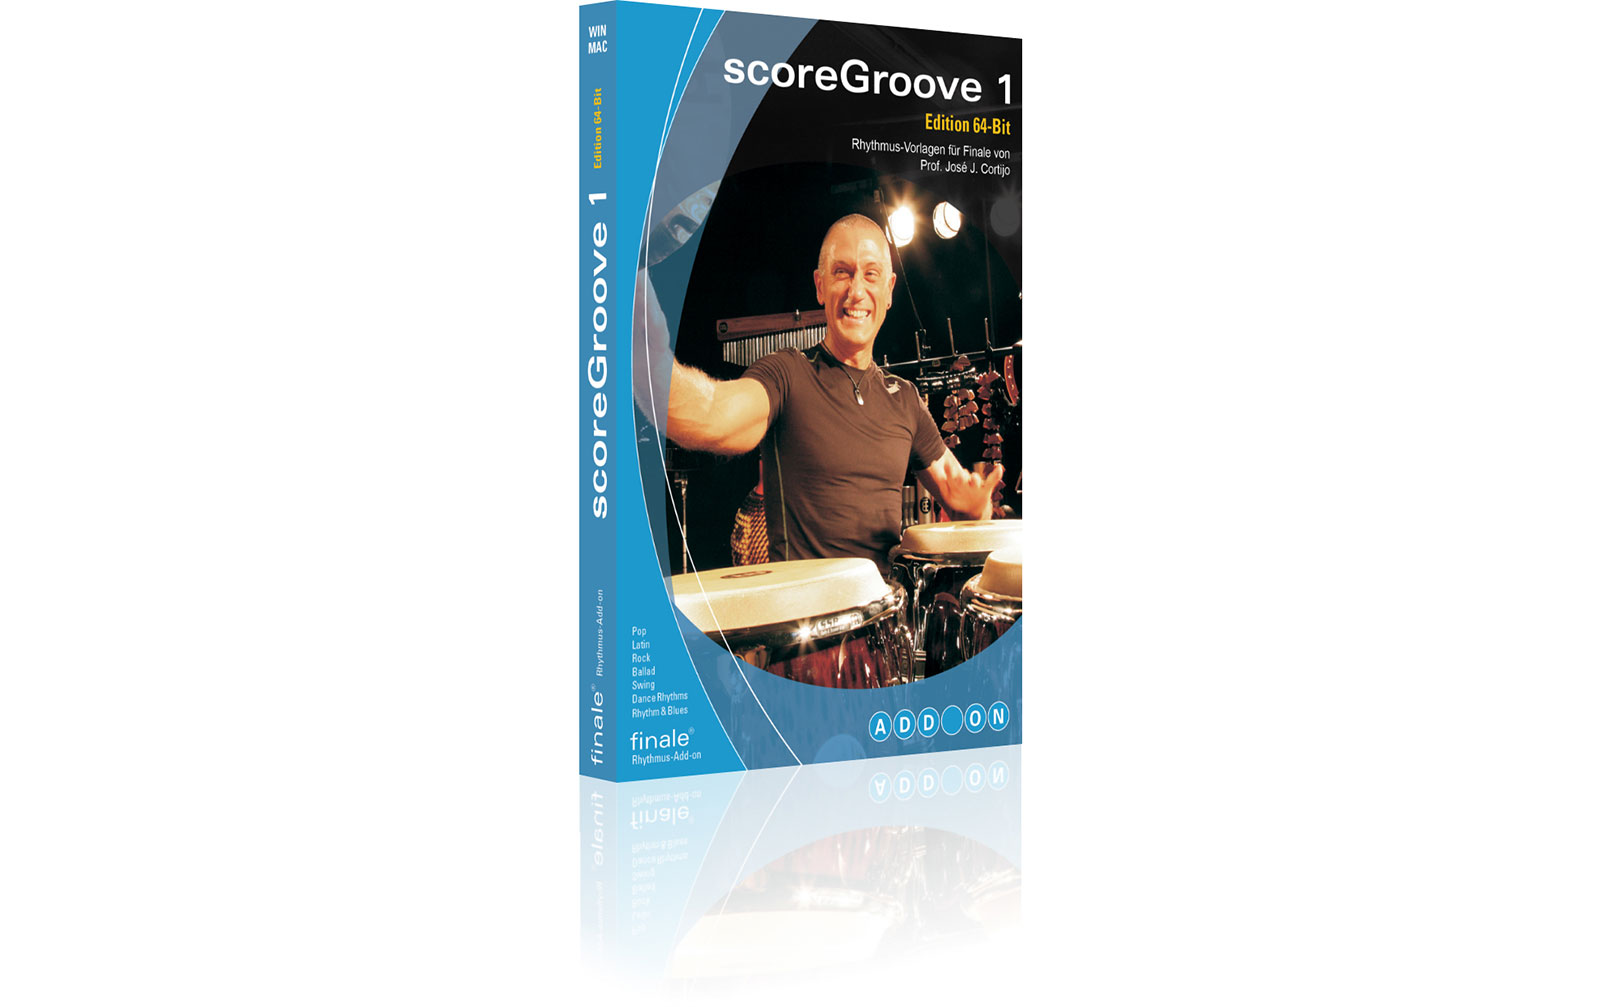 makemusic-scoregroove-vol-1-64-bit-edition